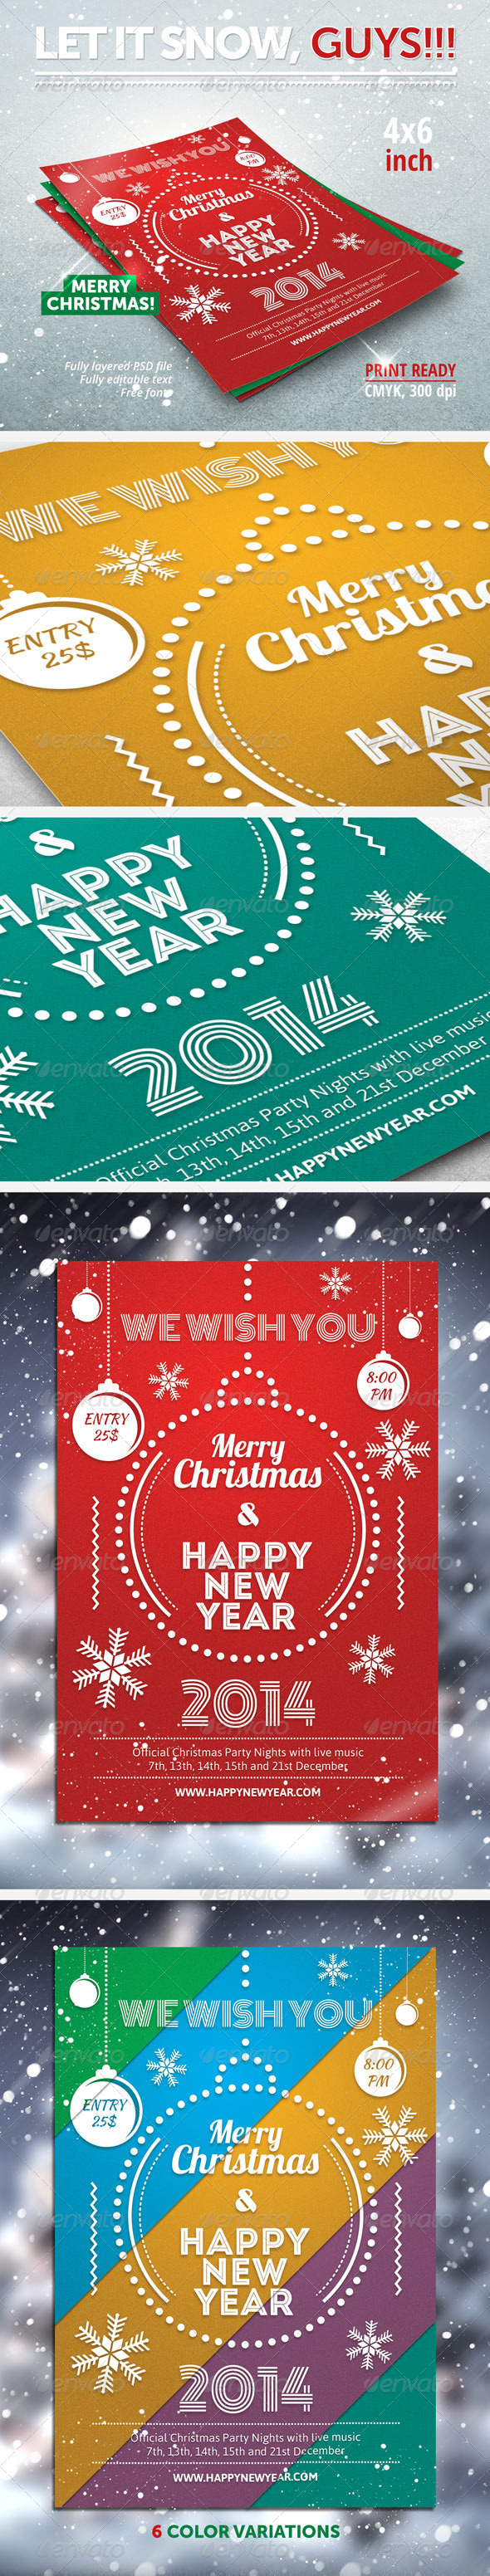 GraphicRiver Christmas New Year party flyer 5975431